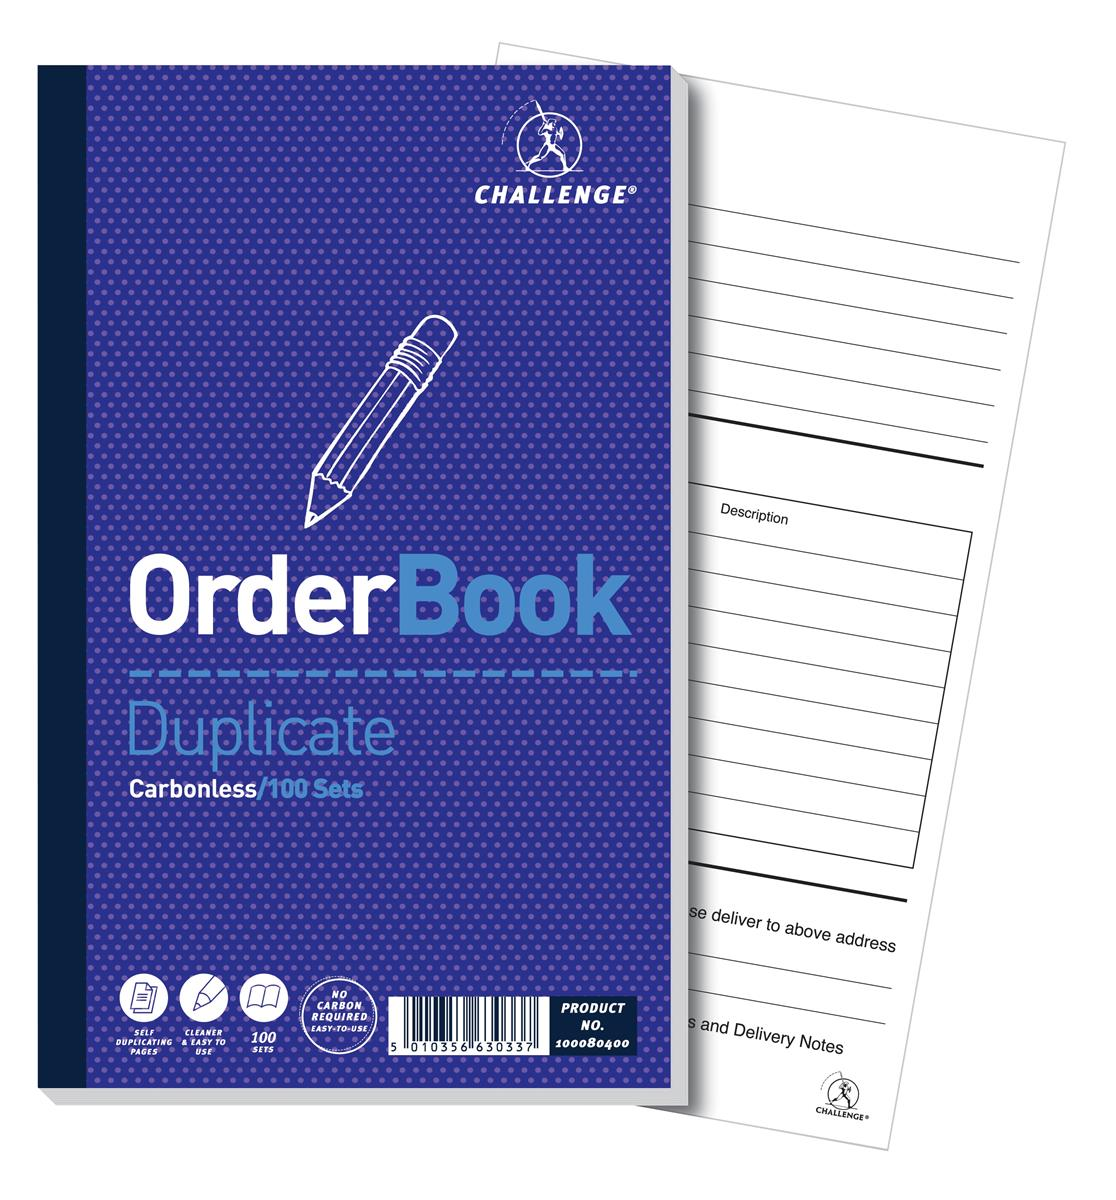 Image for Challenge Duplicate Book Carbonless Order 100 Sets 210x130mm Ref 100080400 [Pack 5]